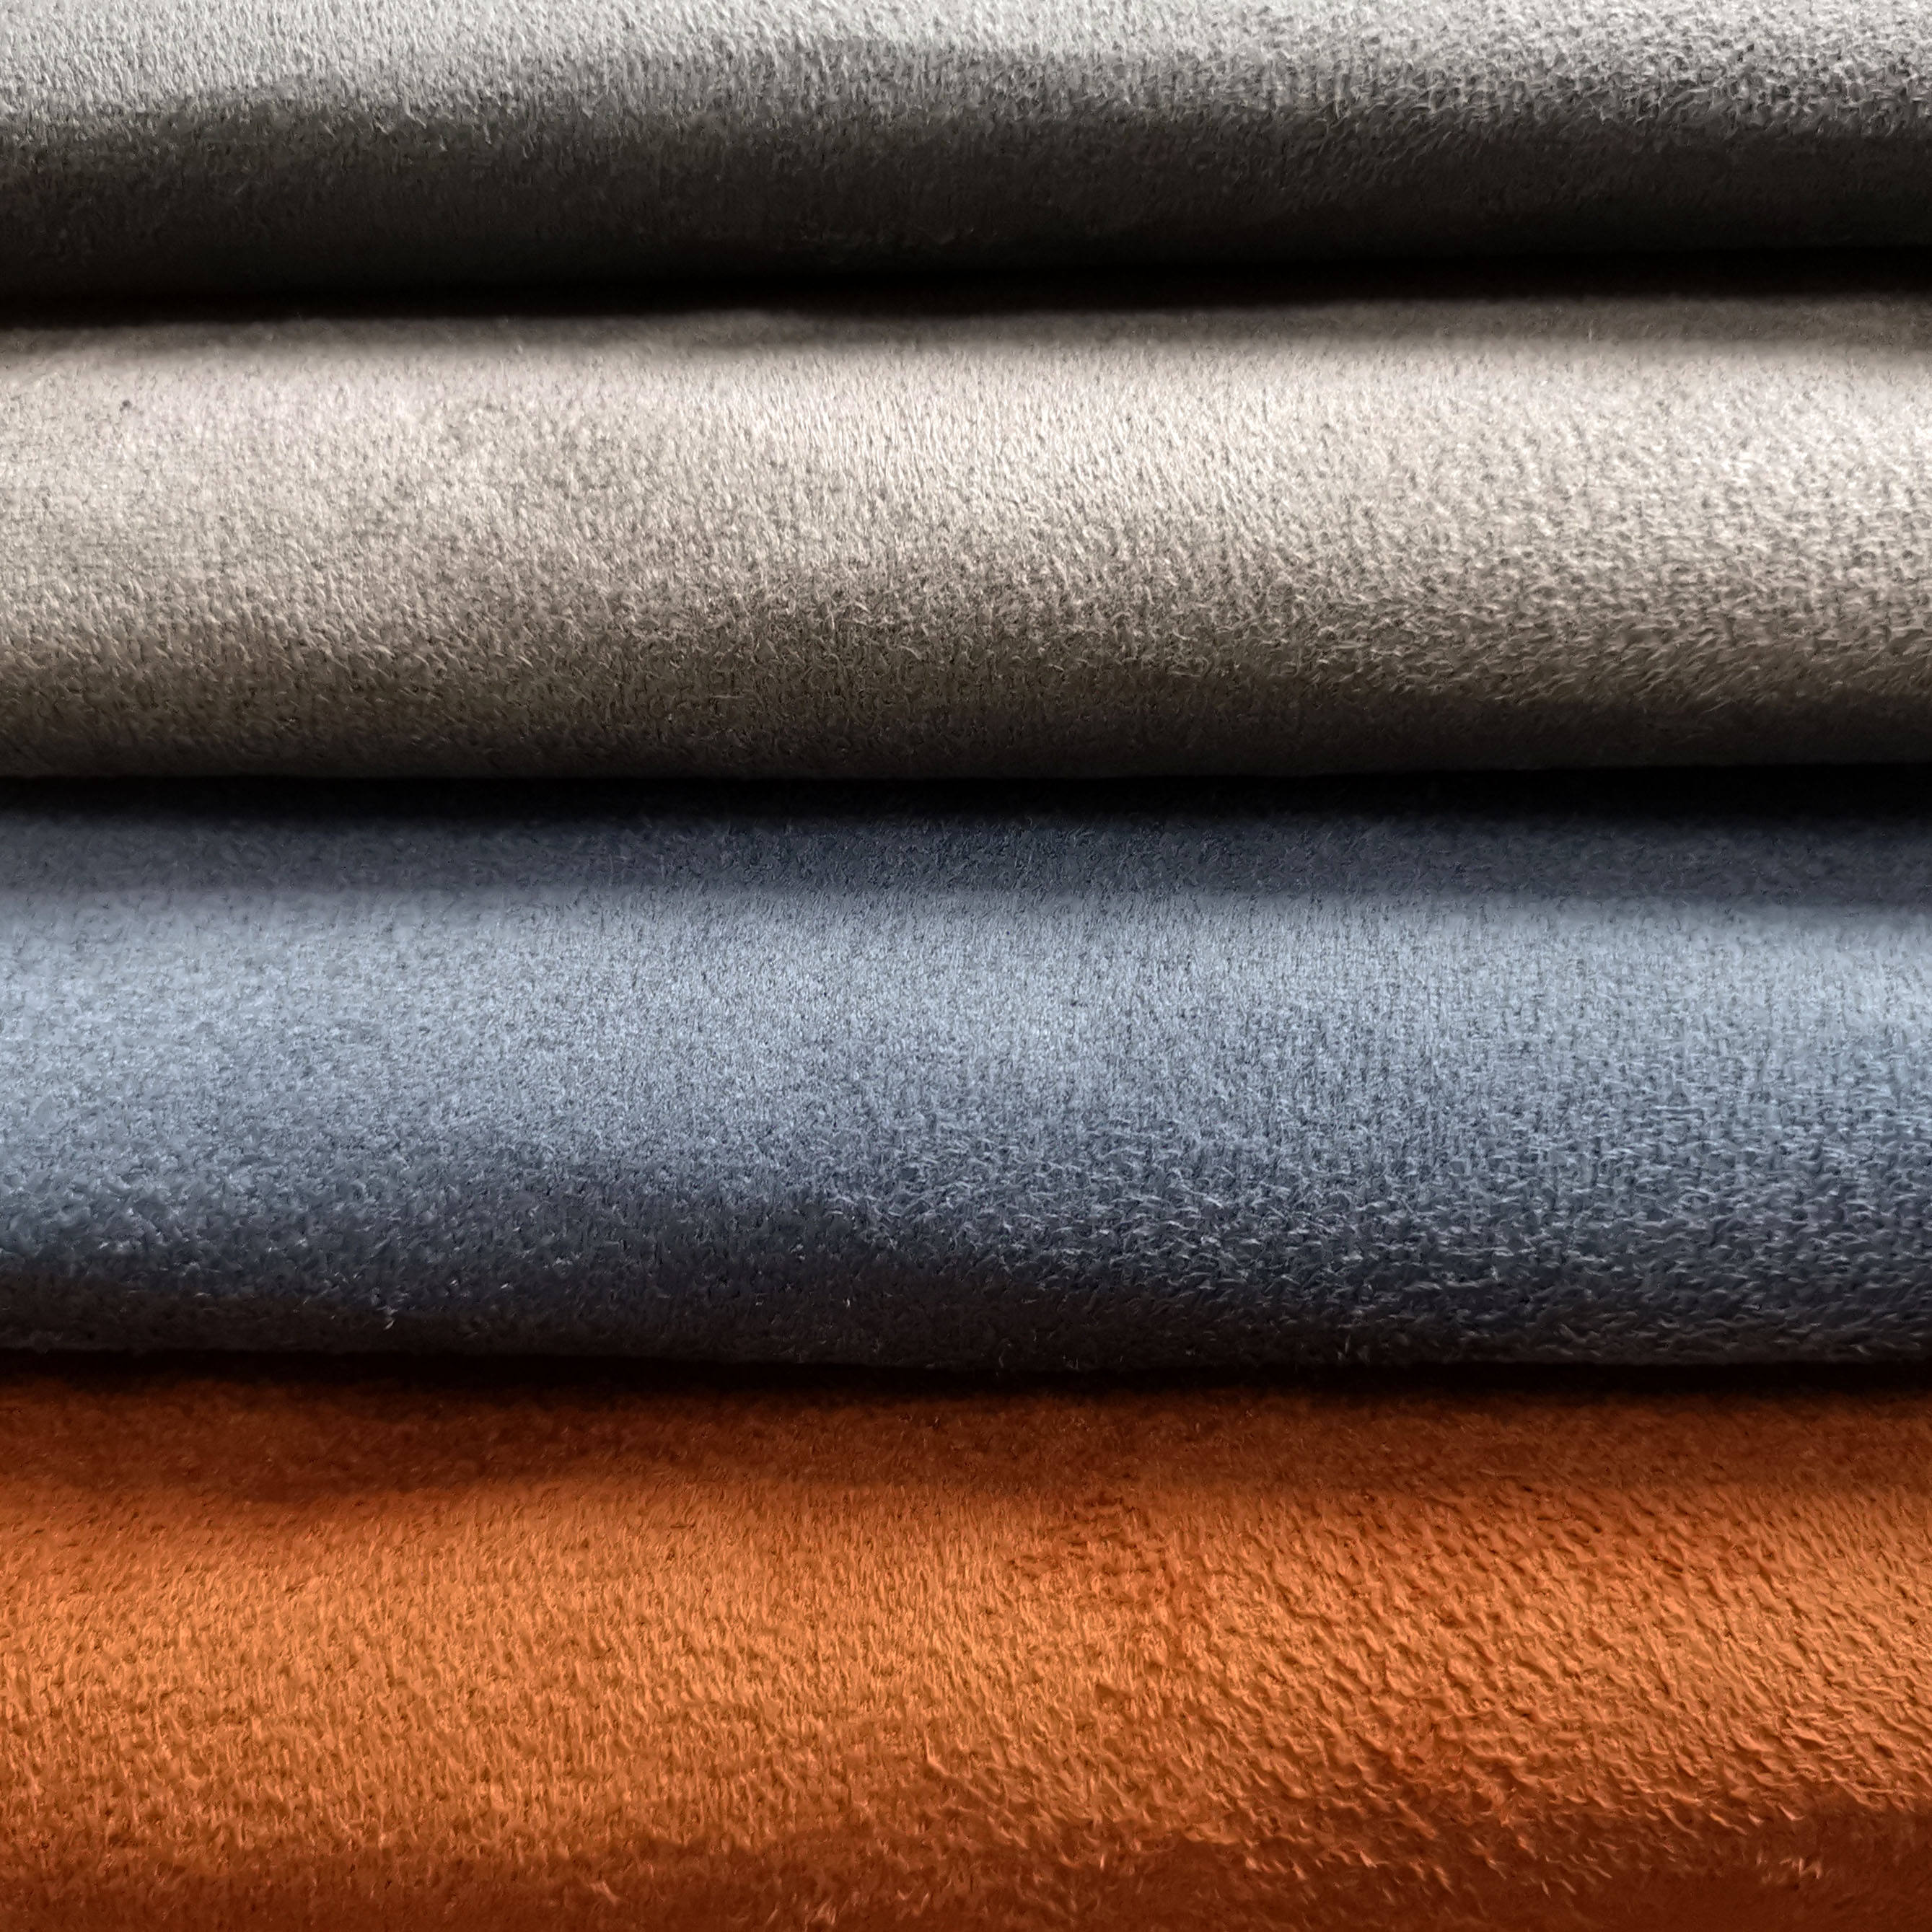 upholstery suede of 100% polyester weave fabric for sofa set or shoes